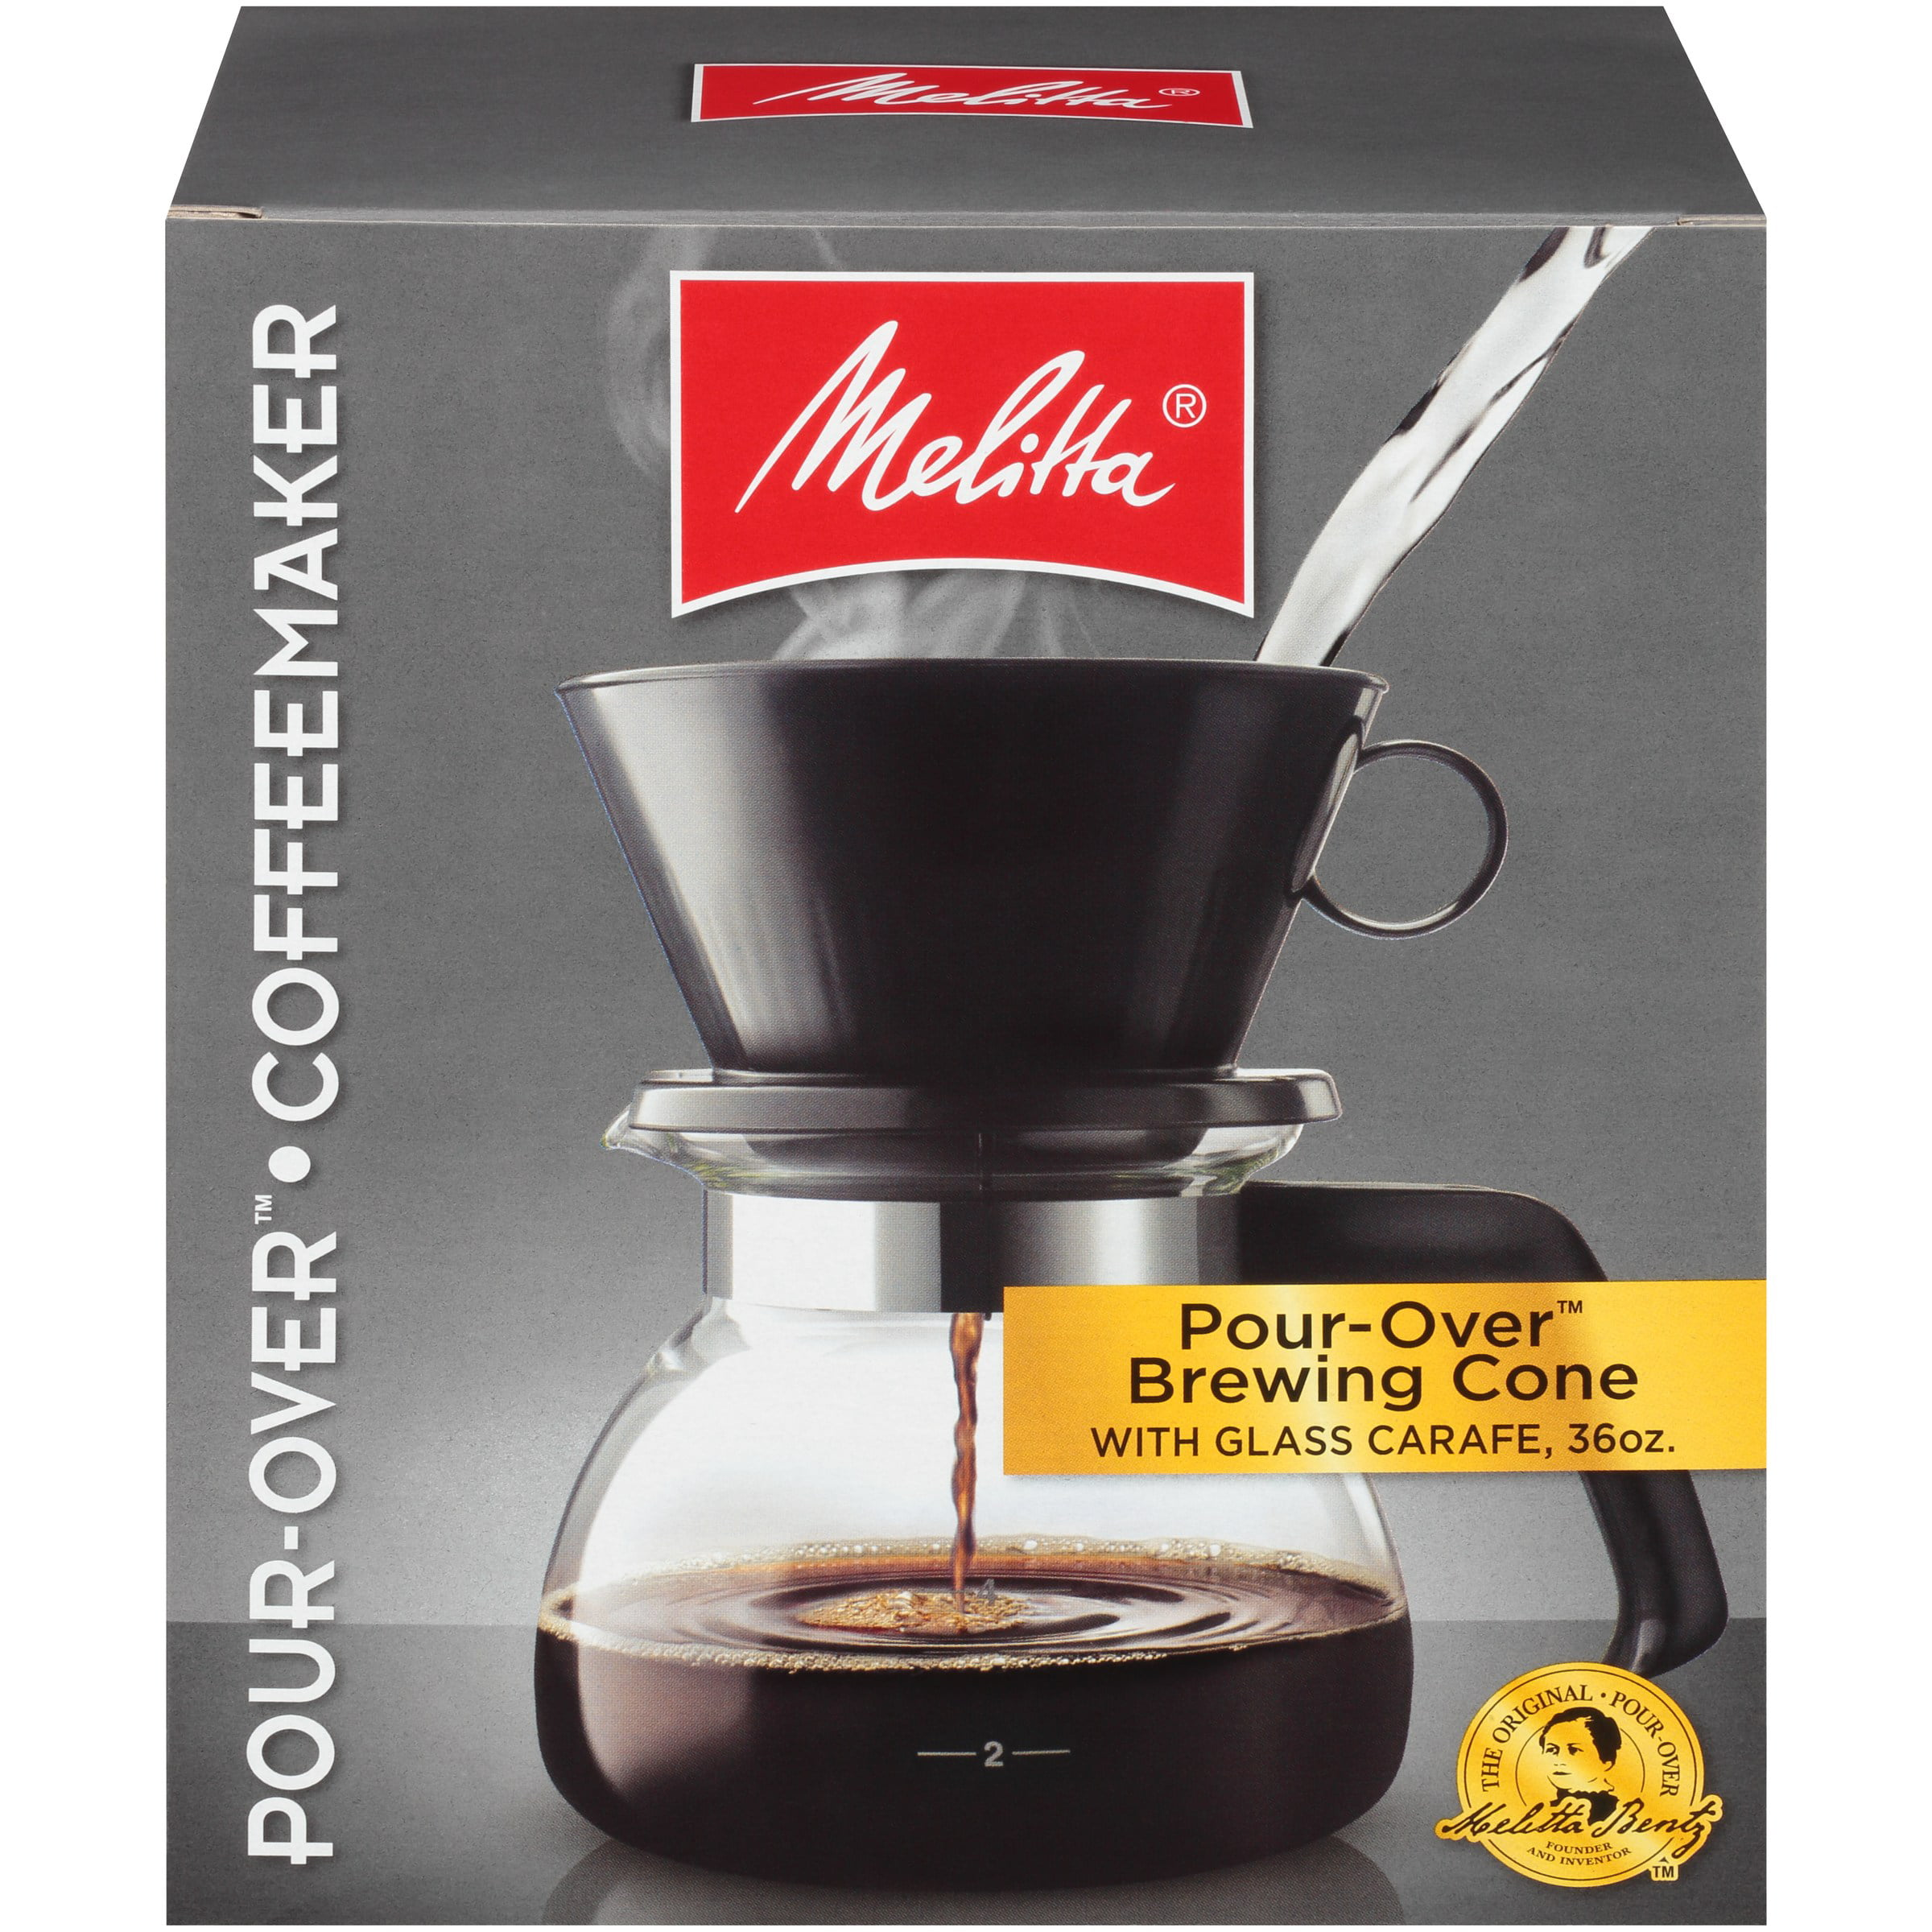 Melitta® Pour-Over Brewer 6 Cup Cone Coffee Maker with ...